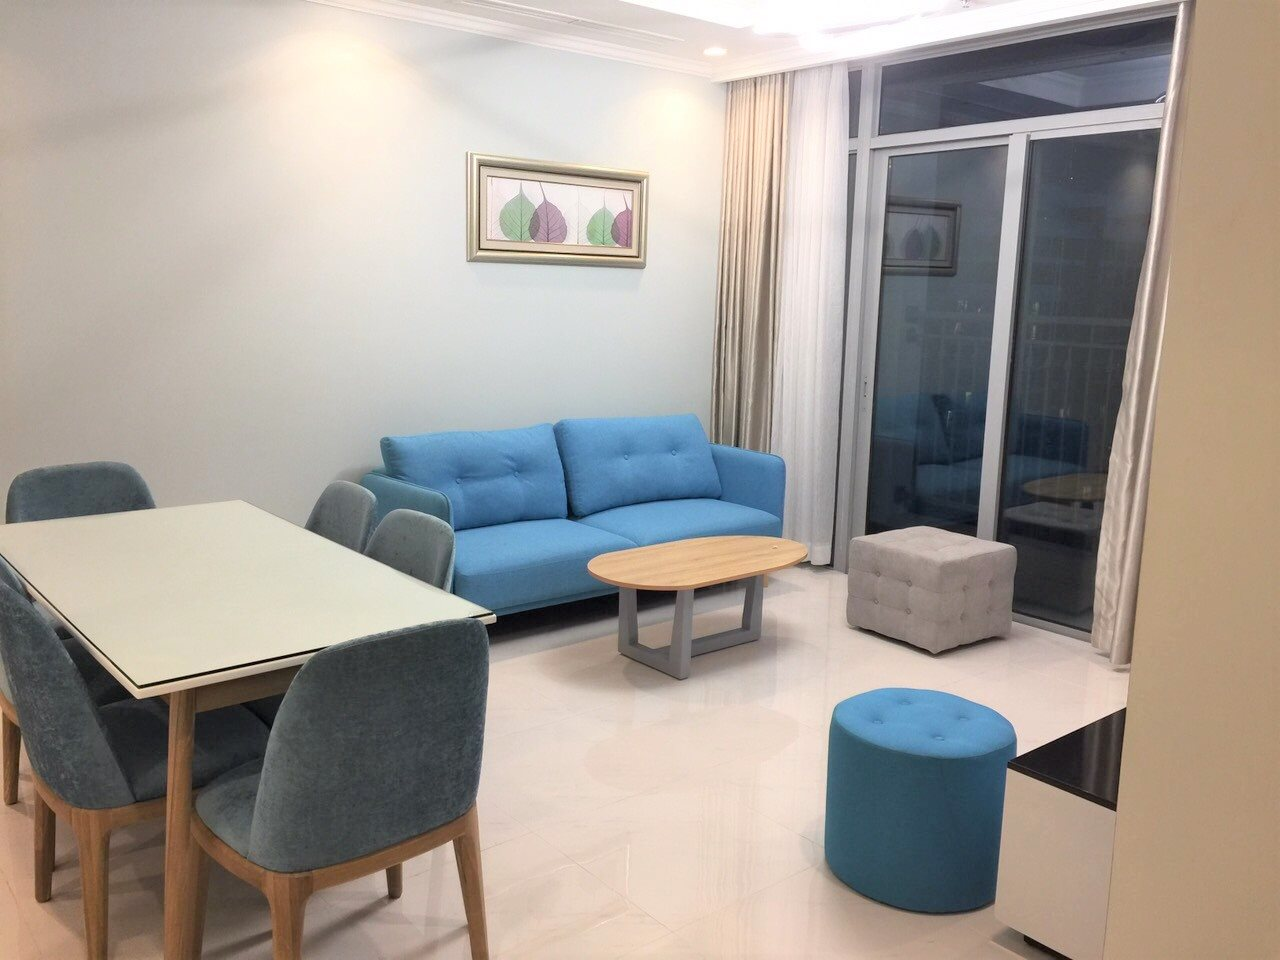 BT105312 - Vinhomes Central Park Apartments For Rent & Sale In Ho Chi Minh City - 2 bedroom